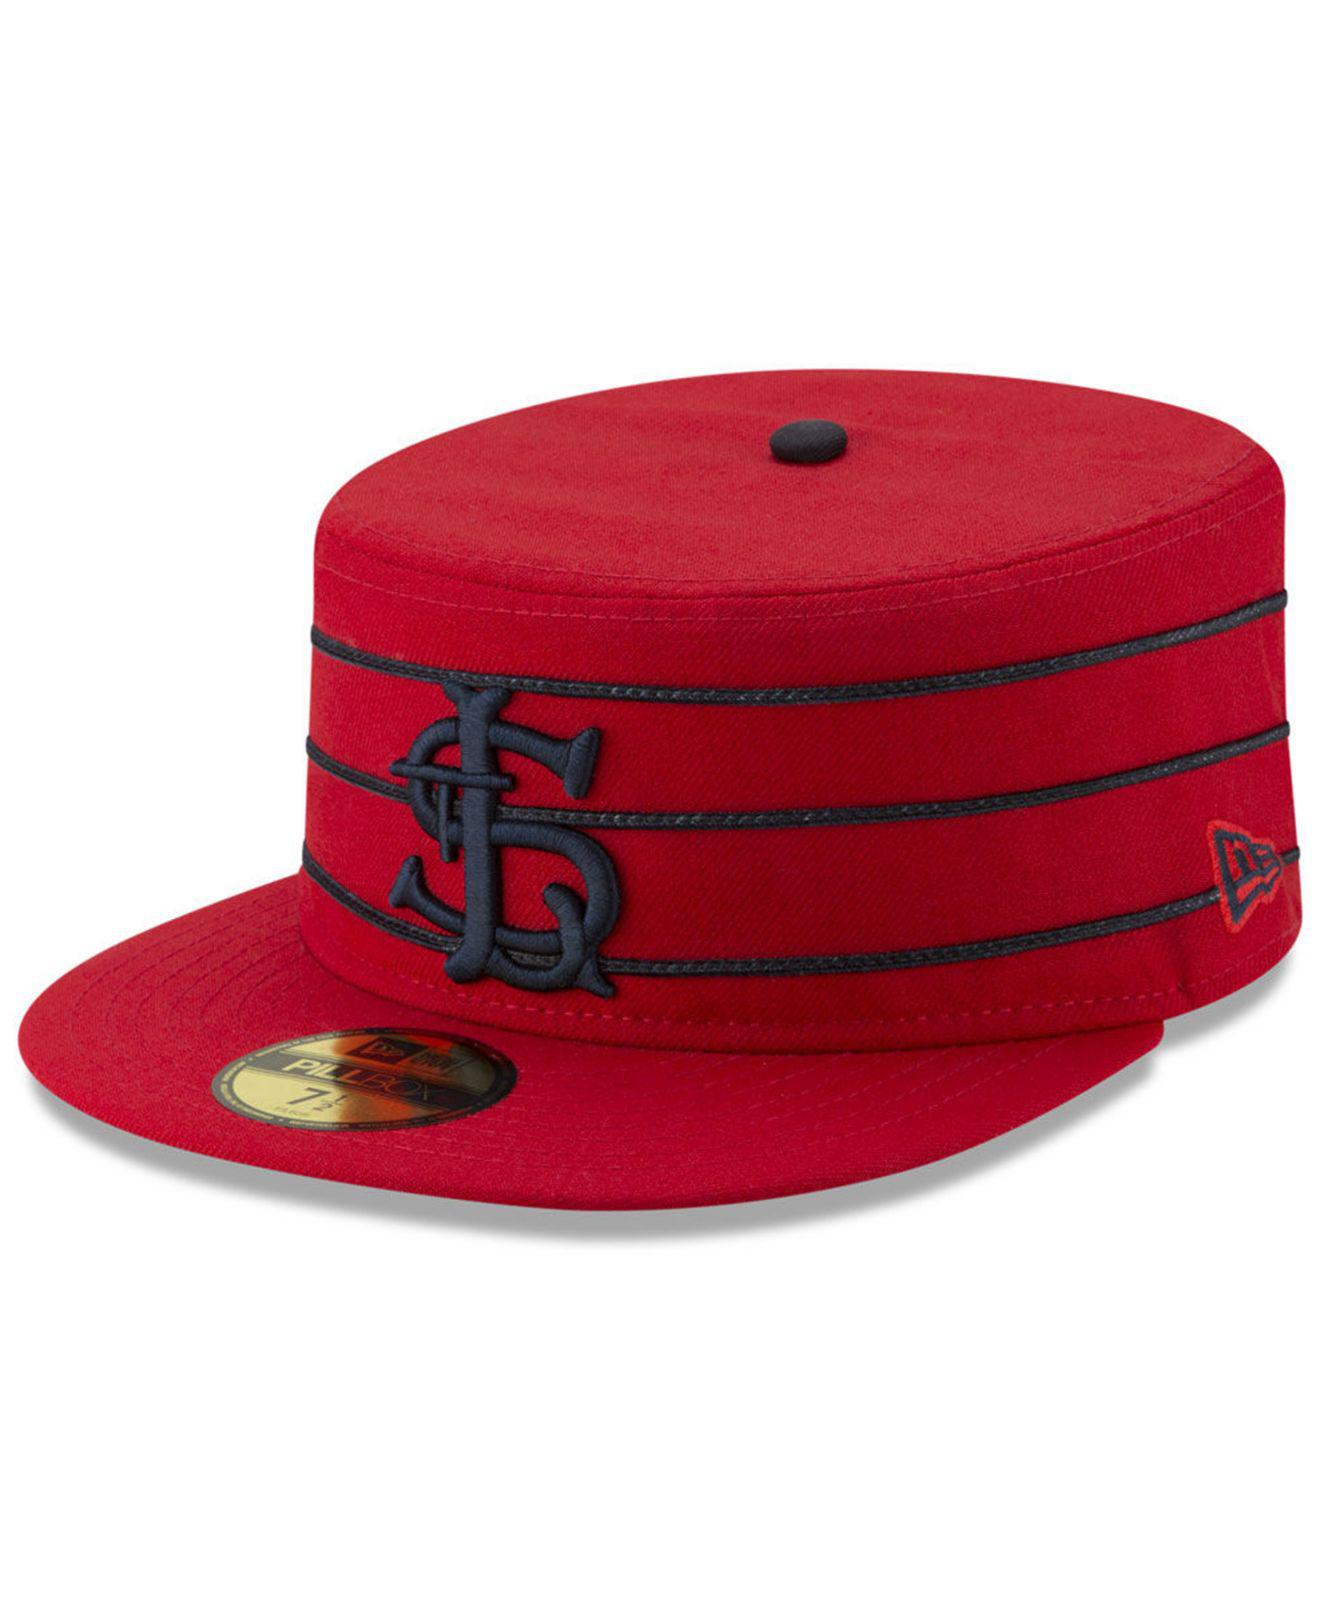 cheap for discount 304dd ef3bf ... netherlands ktz red st. louis cardinals pillbox 59fifty fitted cap for men  lyst 68ea7 53d8c